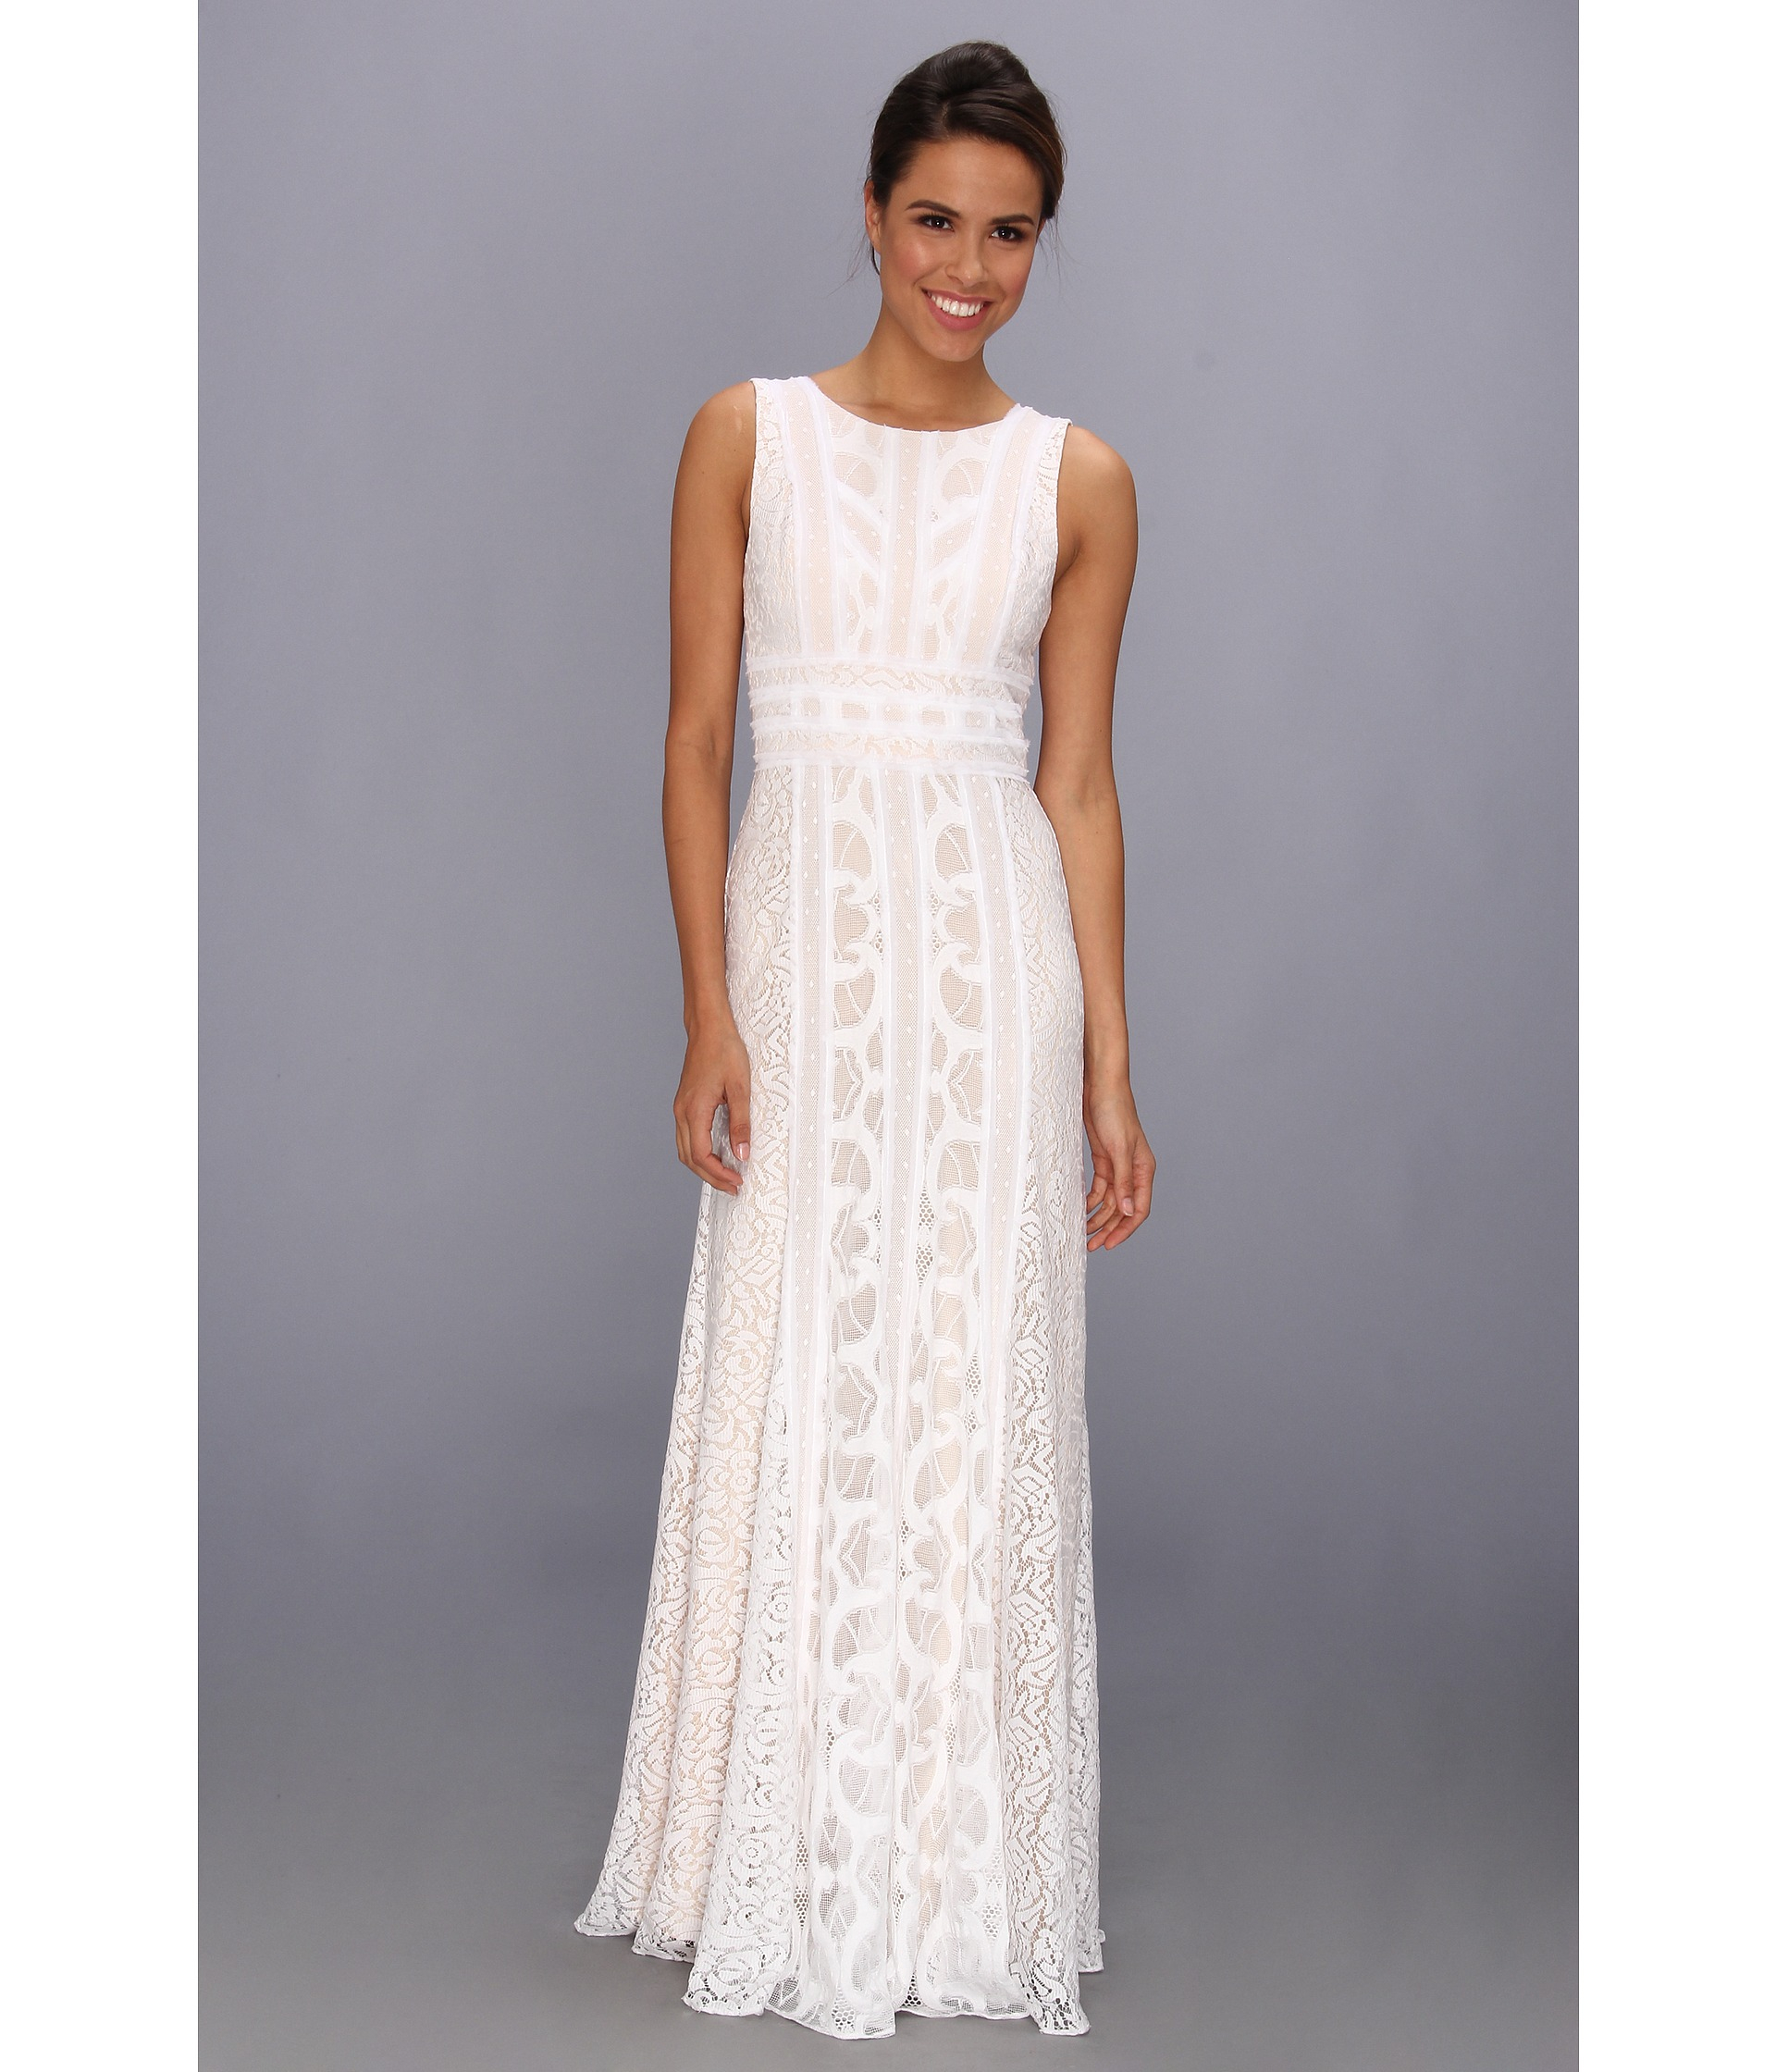 Lyst - Bcbgmaxazria Kelley Woven Lace Evening Gown in White